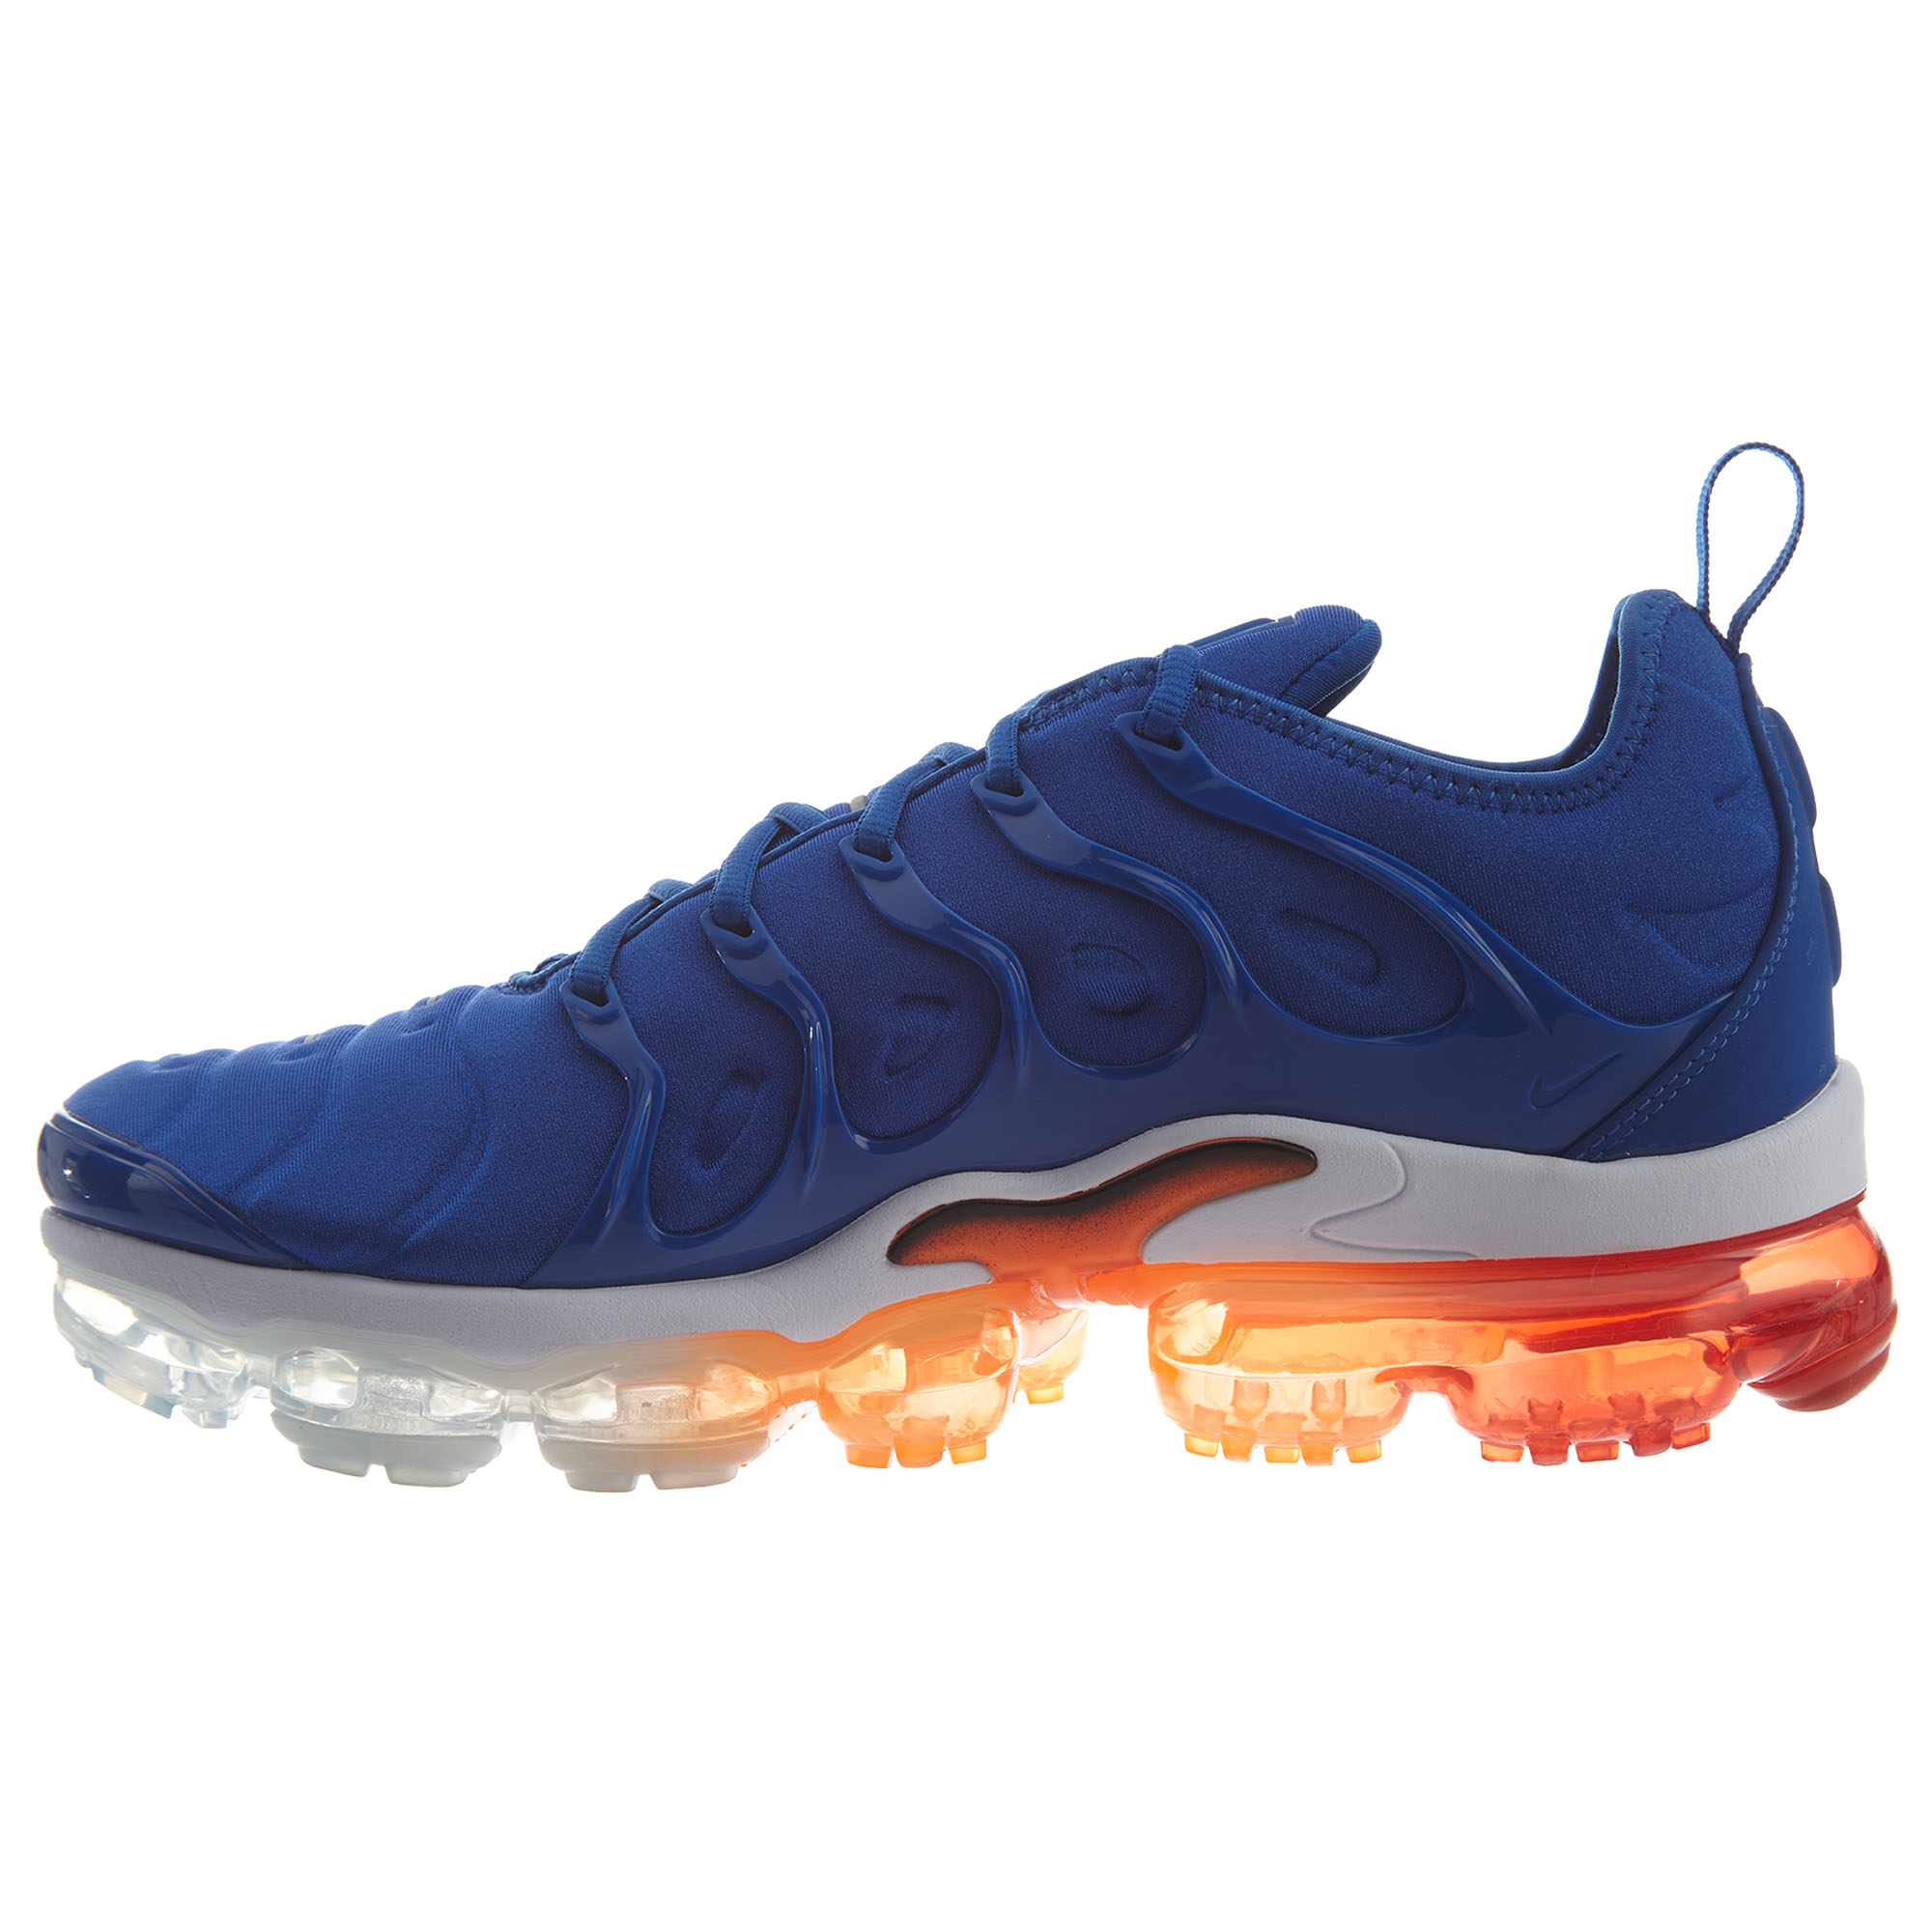 6e29e38d44d Details about Nike Mens Air Vapormax Plus Shoes 924453-403